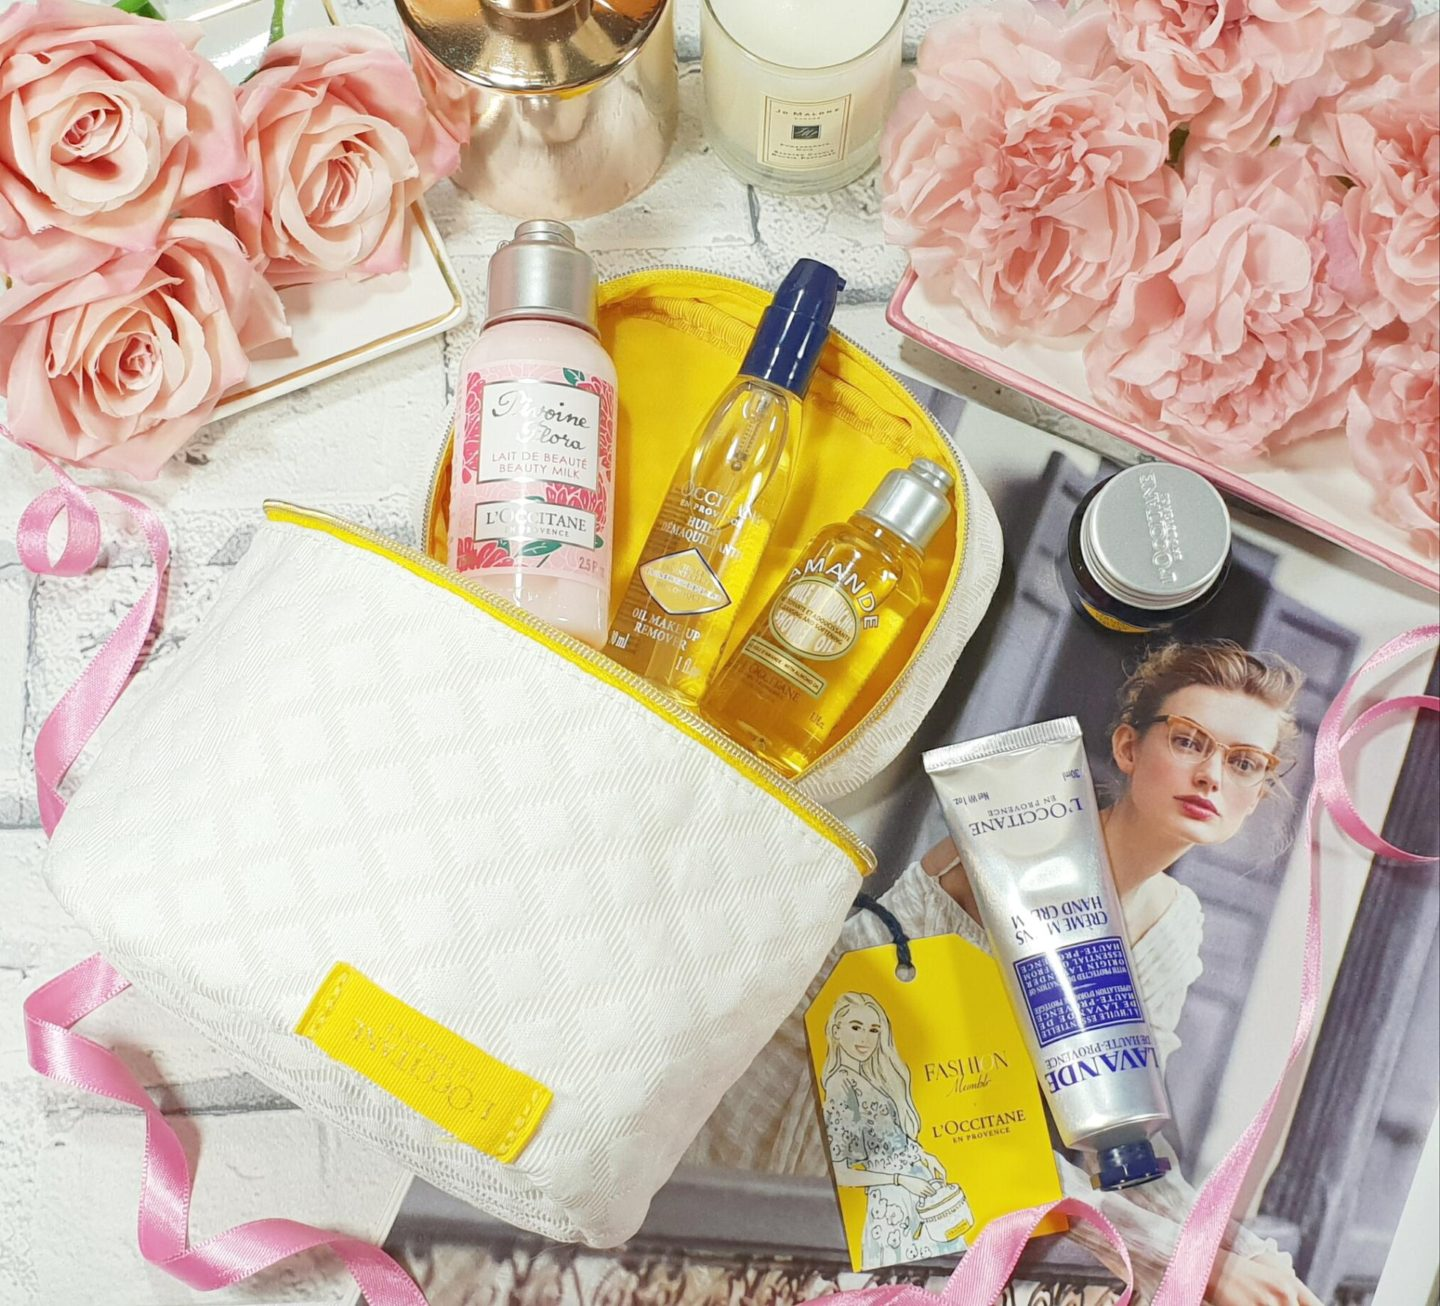 Fashion Mumblr X L'Occitane Beauty Collection